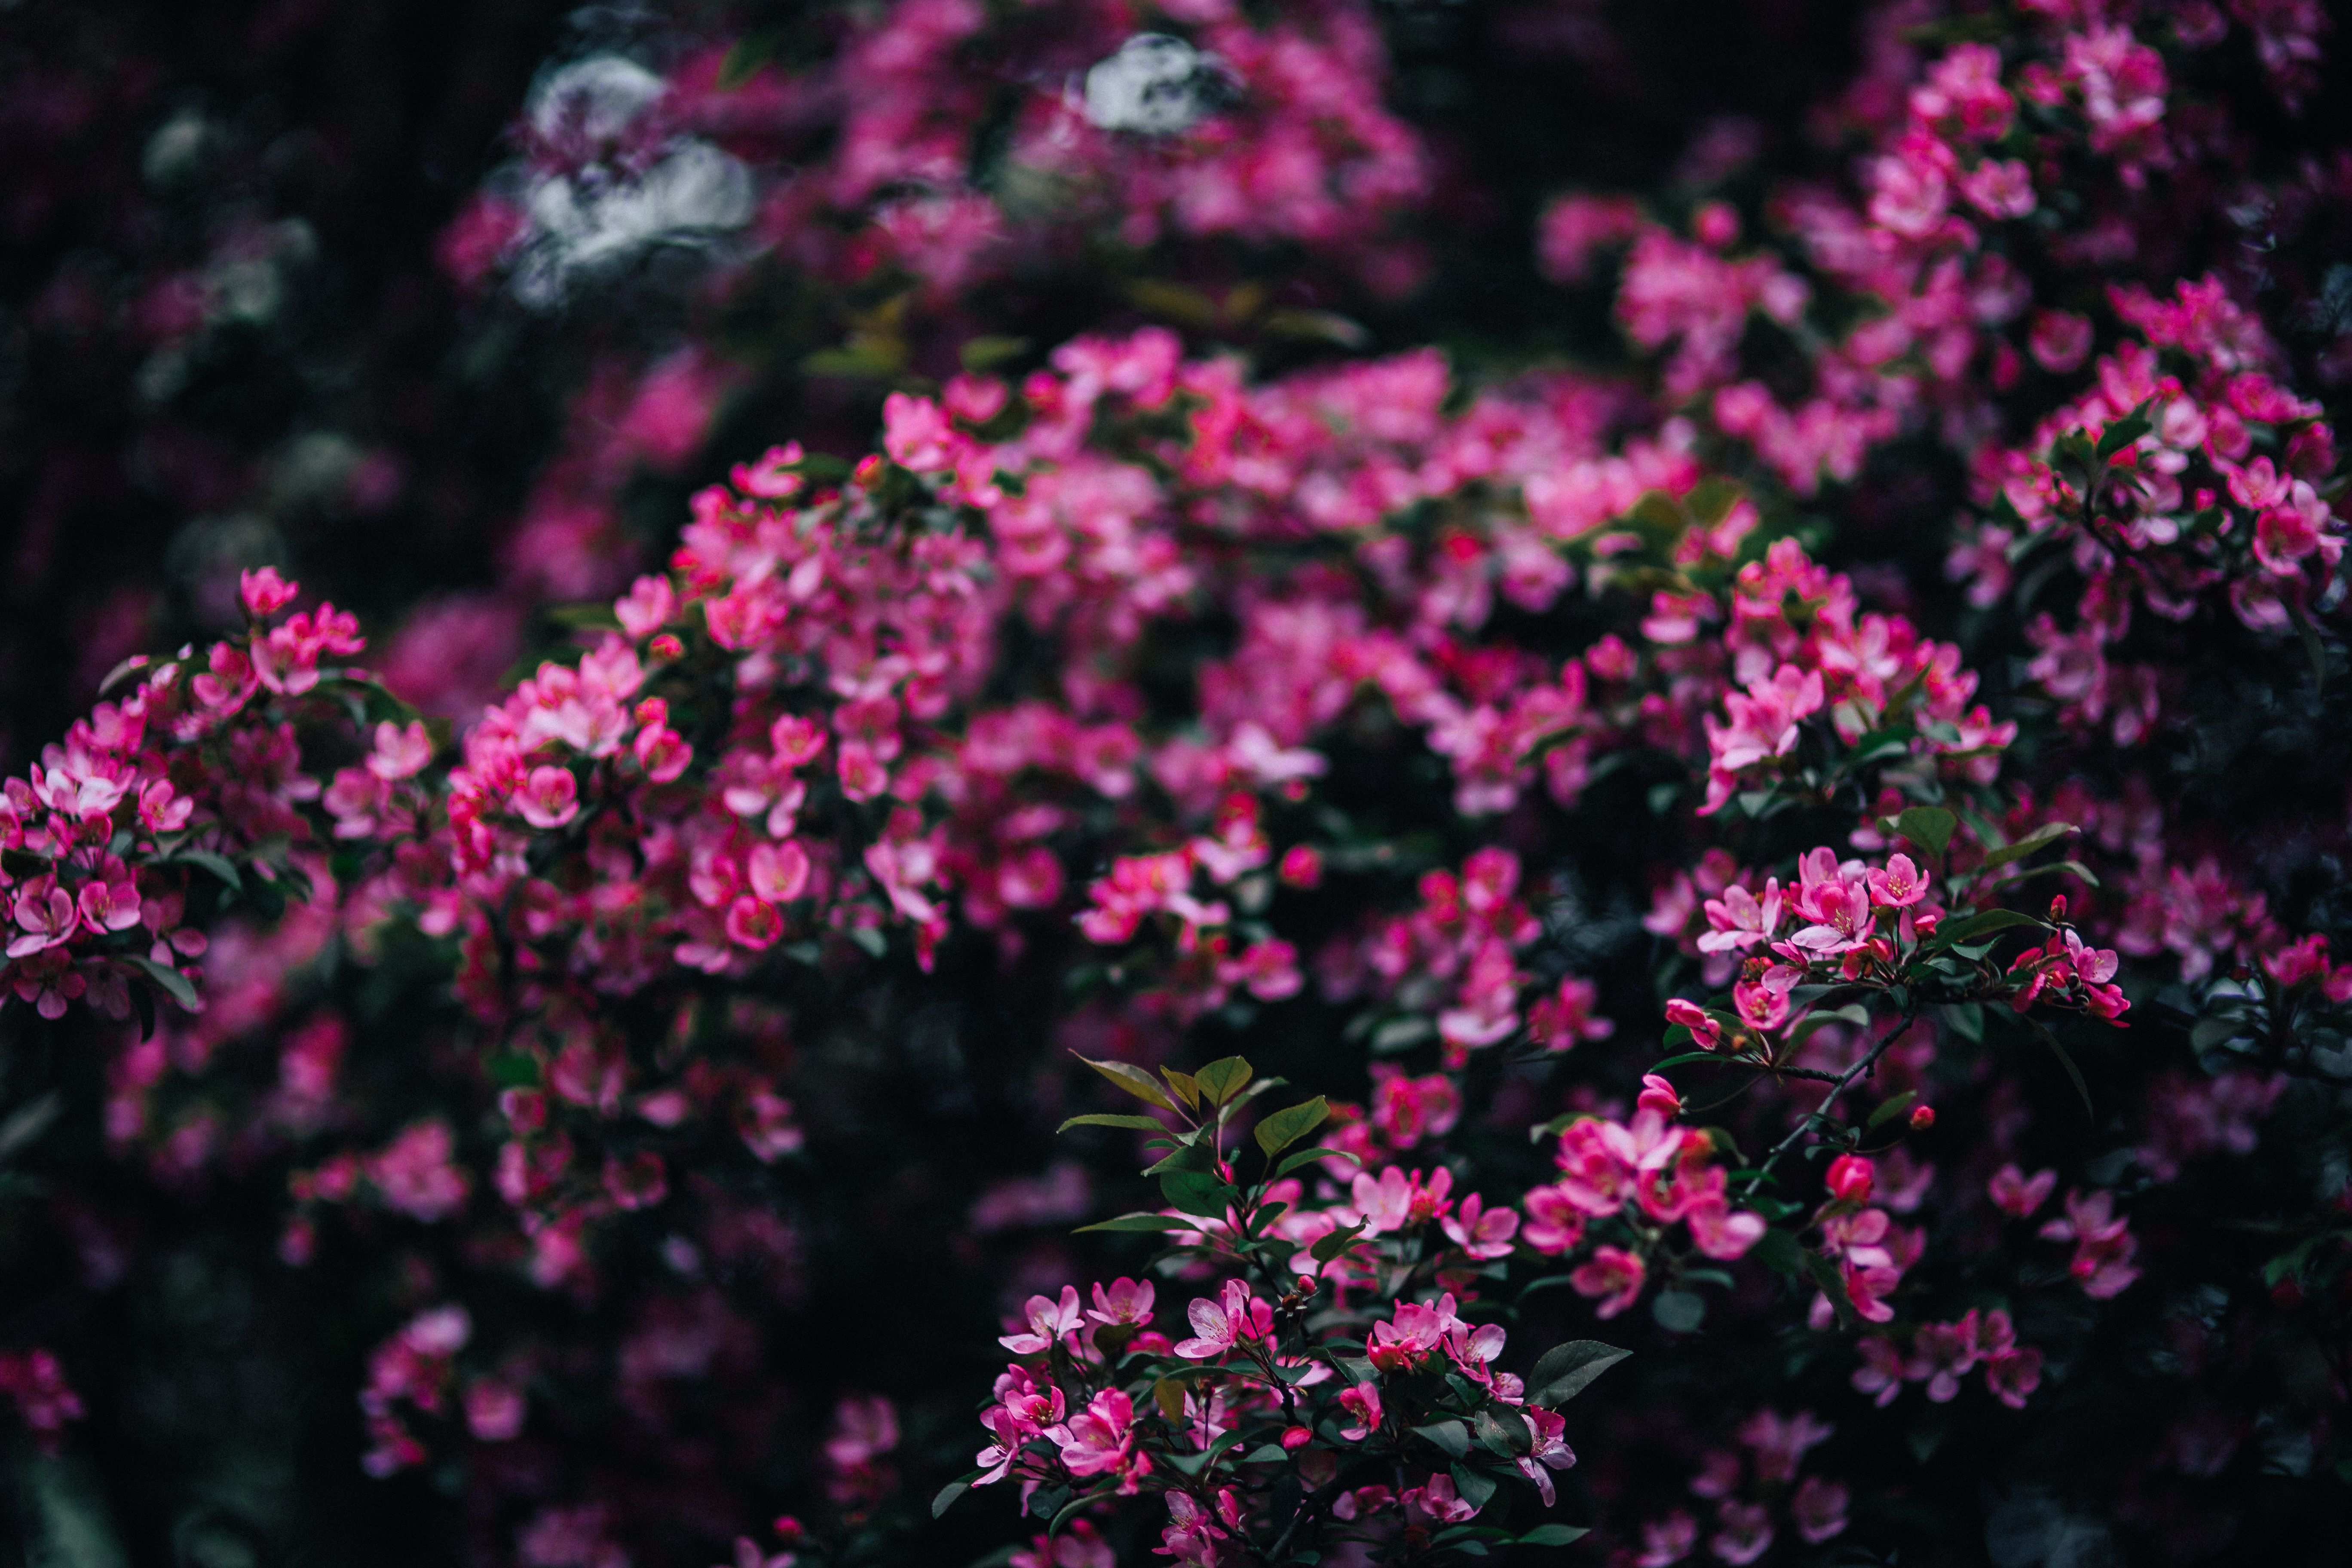 Free stock photos of nature kaboompics lovely pink flowers blooming from the tree branches mightylinksfo